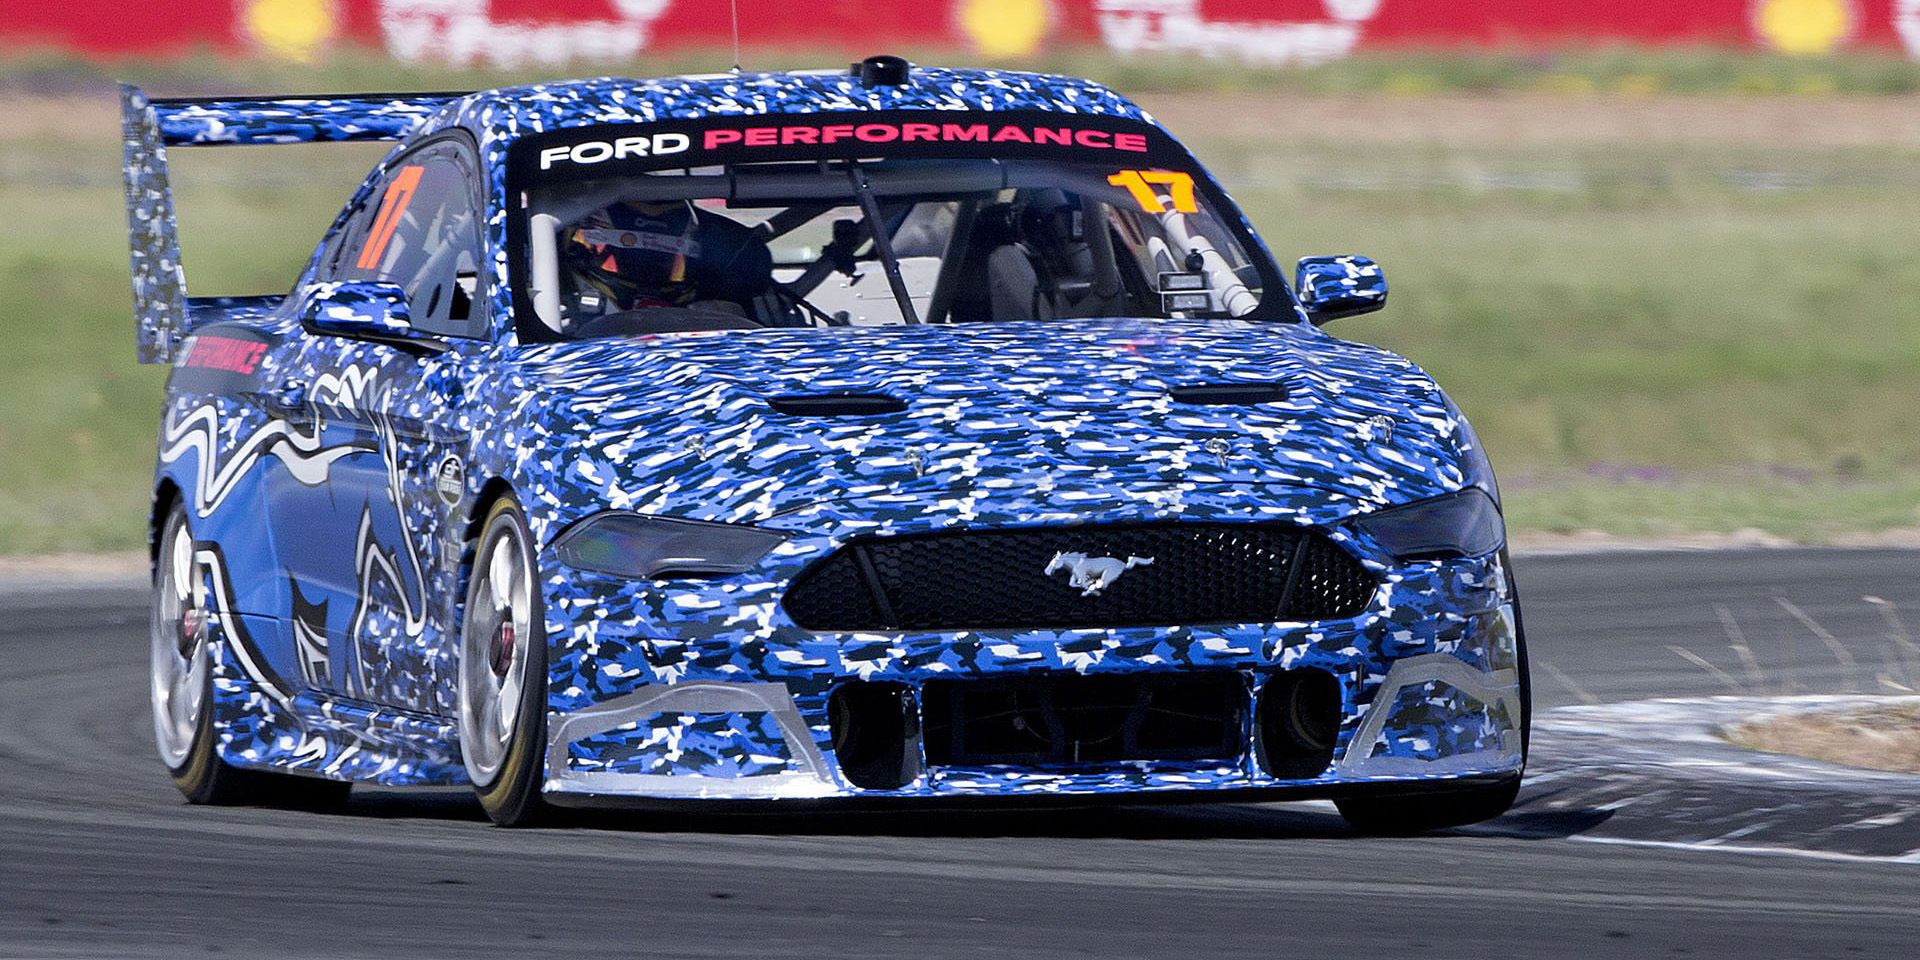 The new ford mustang supercar looks sufficiently wild